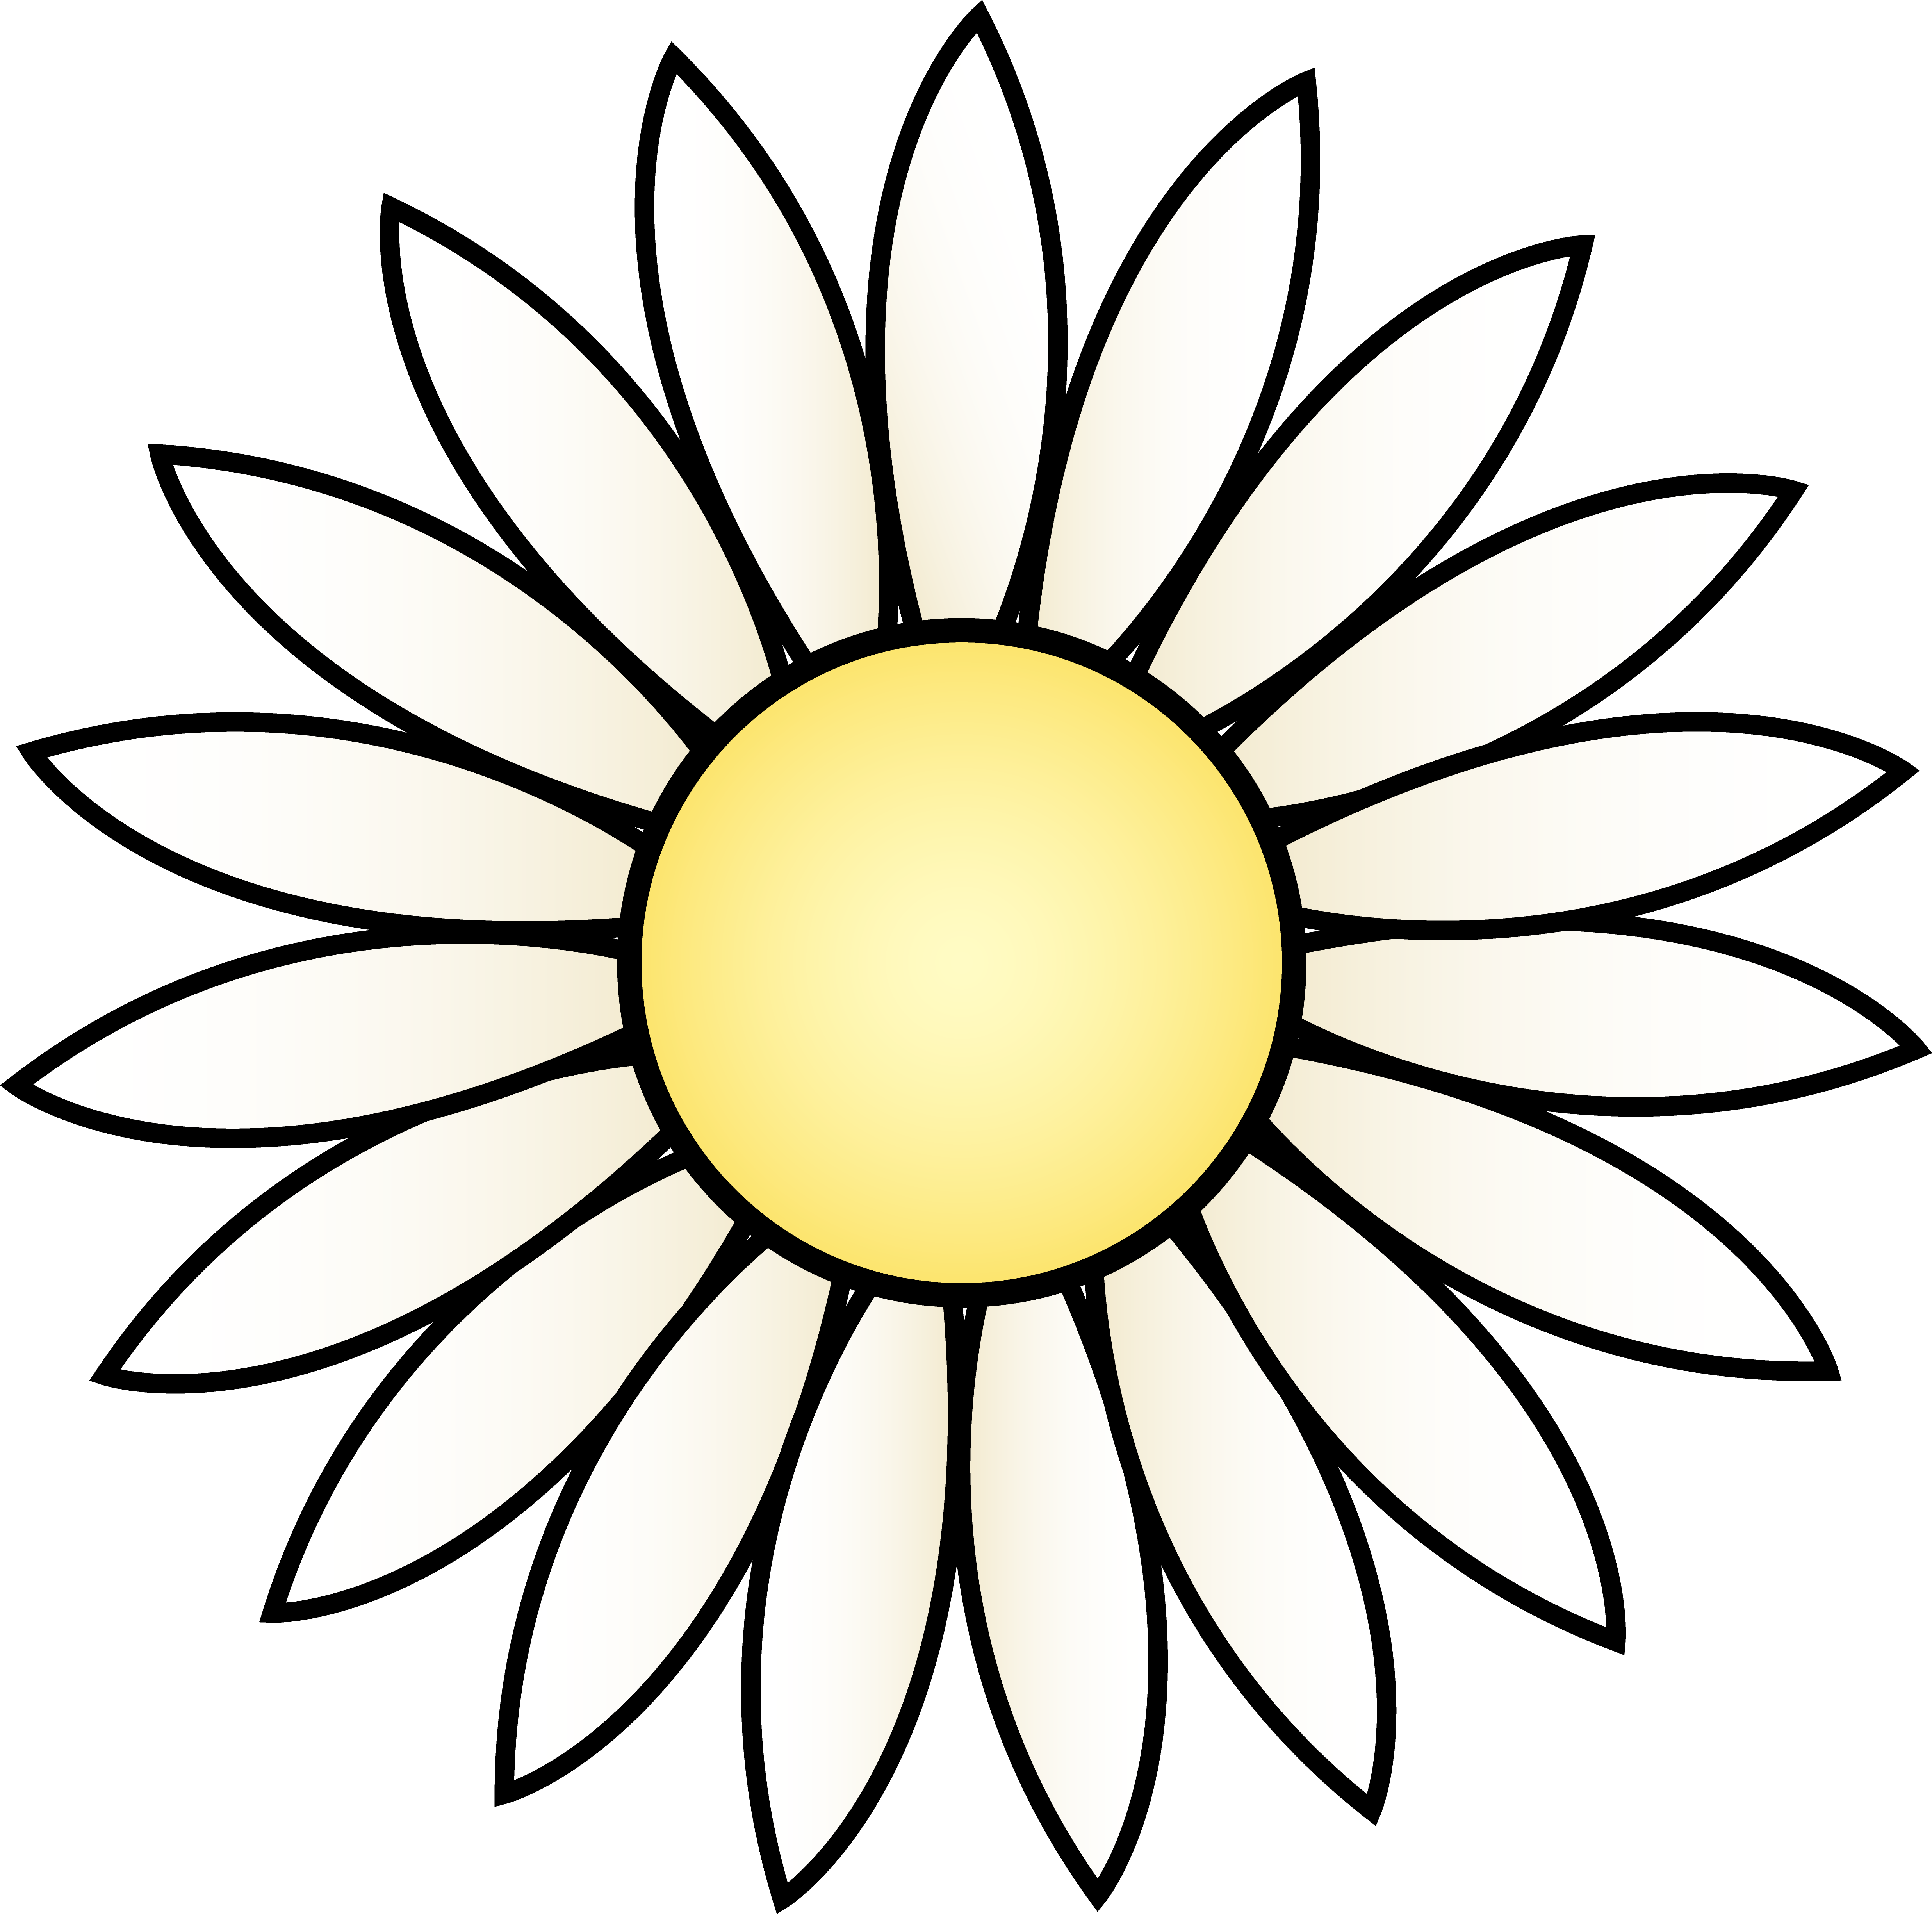 Daisy clipart #10, Download drawings